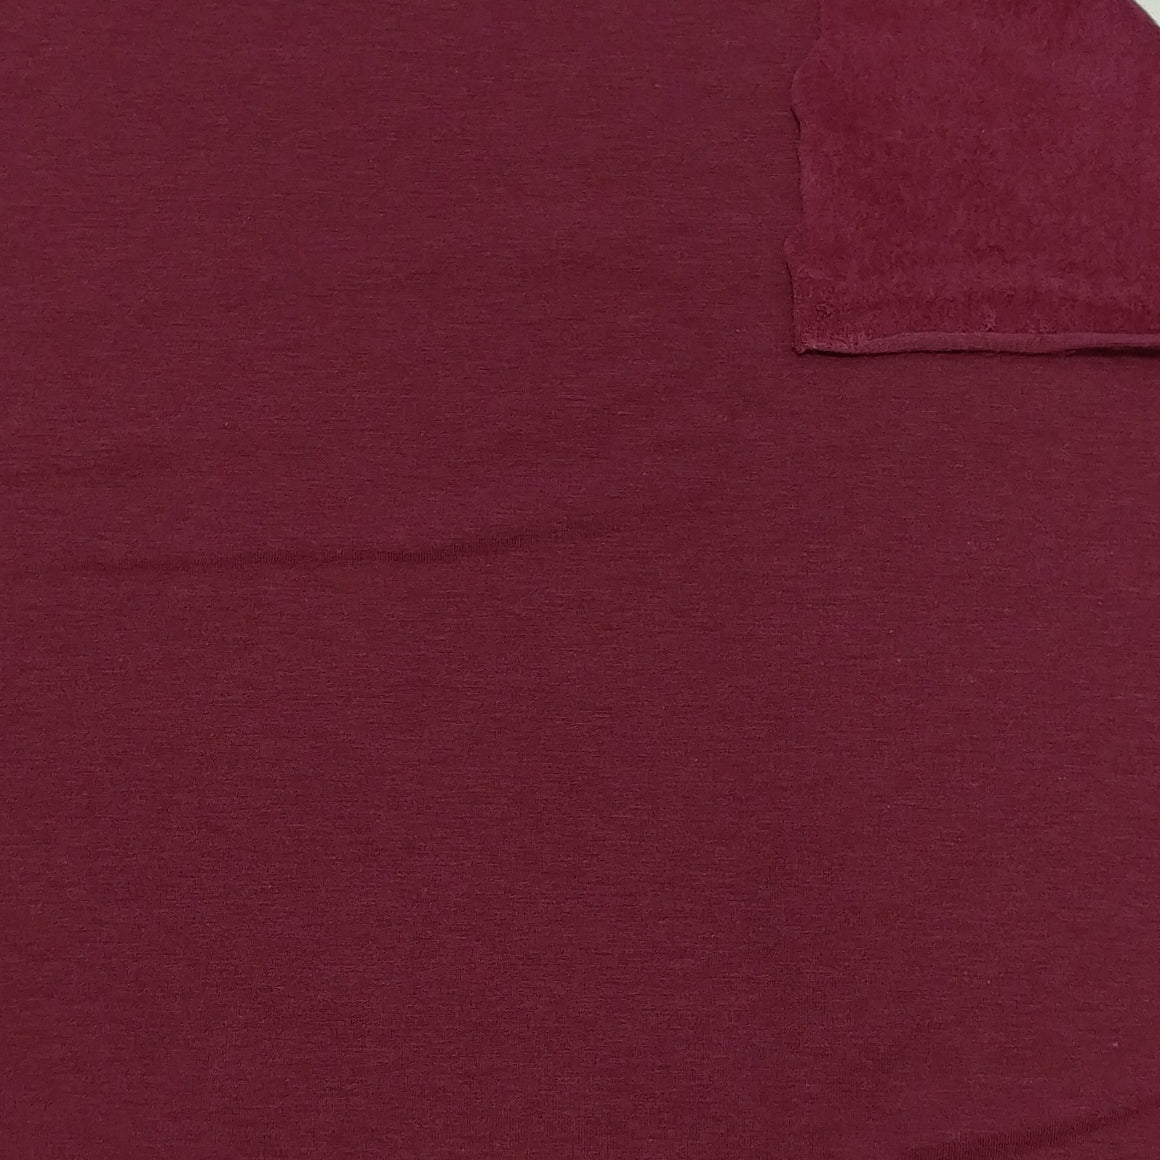 Burgundy Lyocell Organic Cotton Spandex 4 Way Stretch Sweatshirt Fleece - Raspberry Creek Fabrics